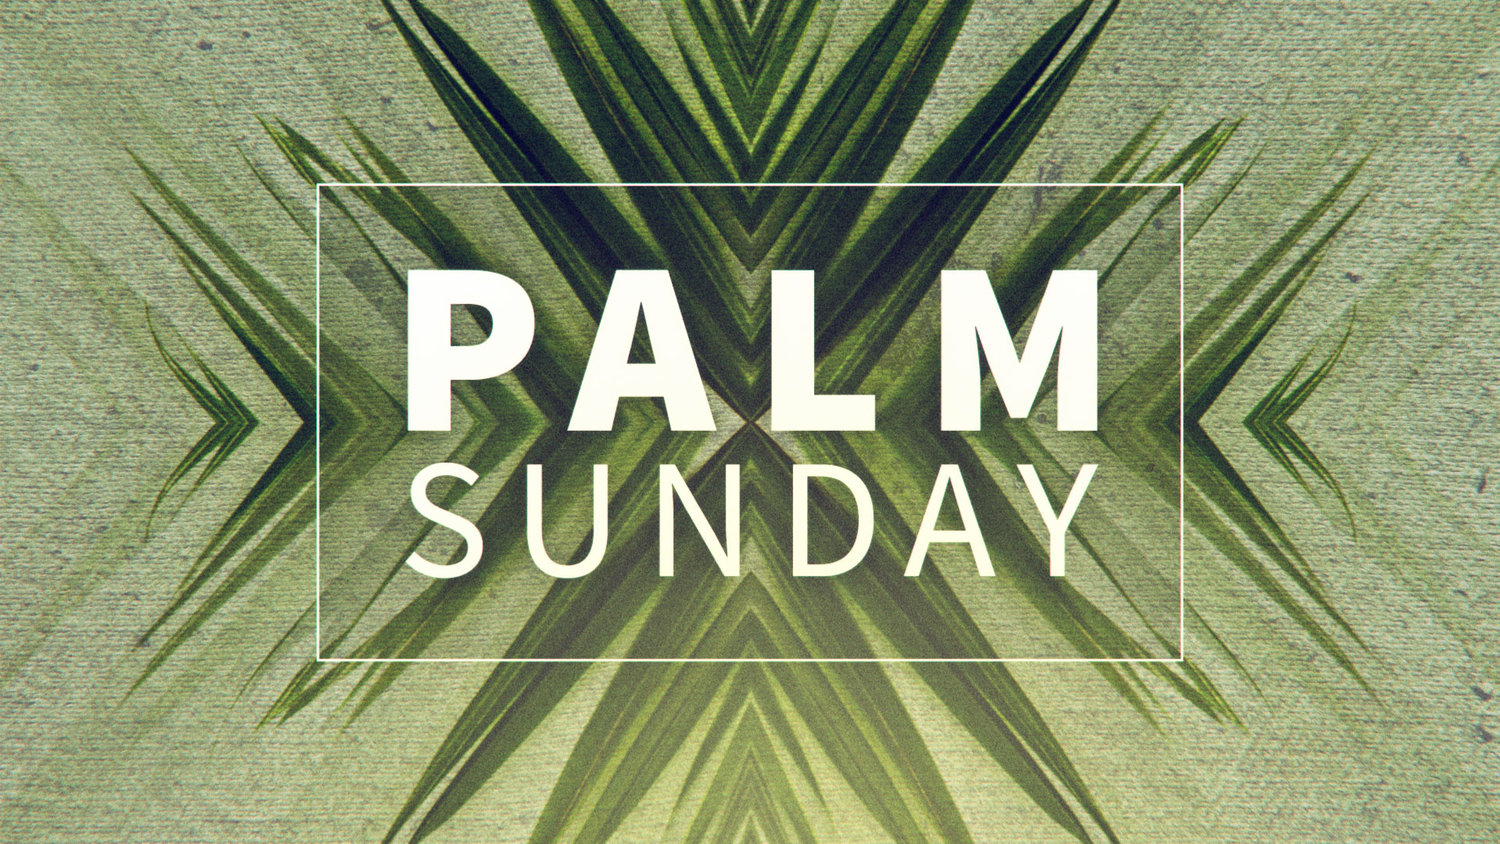 happy palm sunday wishes hosanna text image desktop hd wallpaper